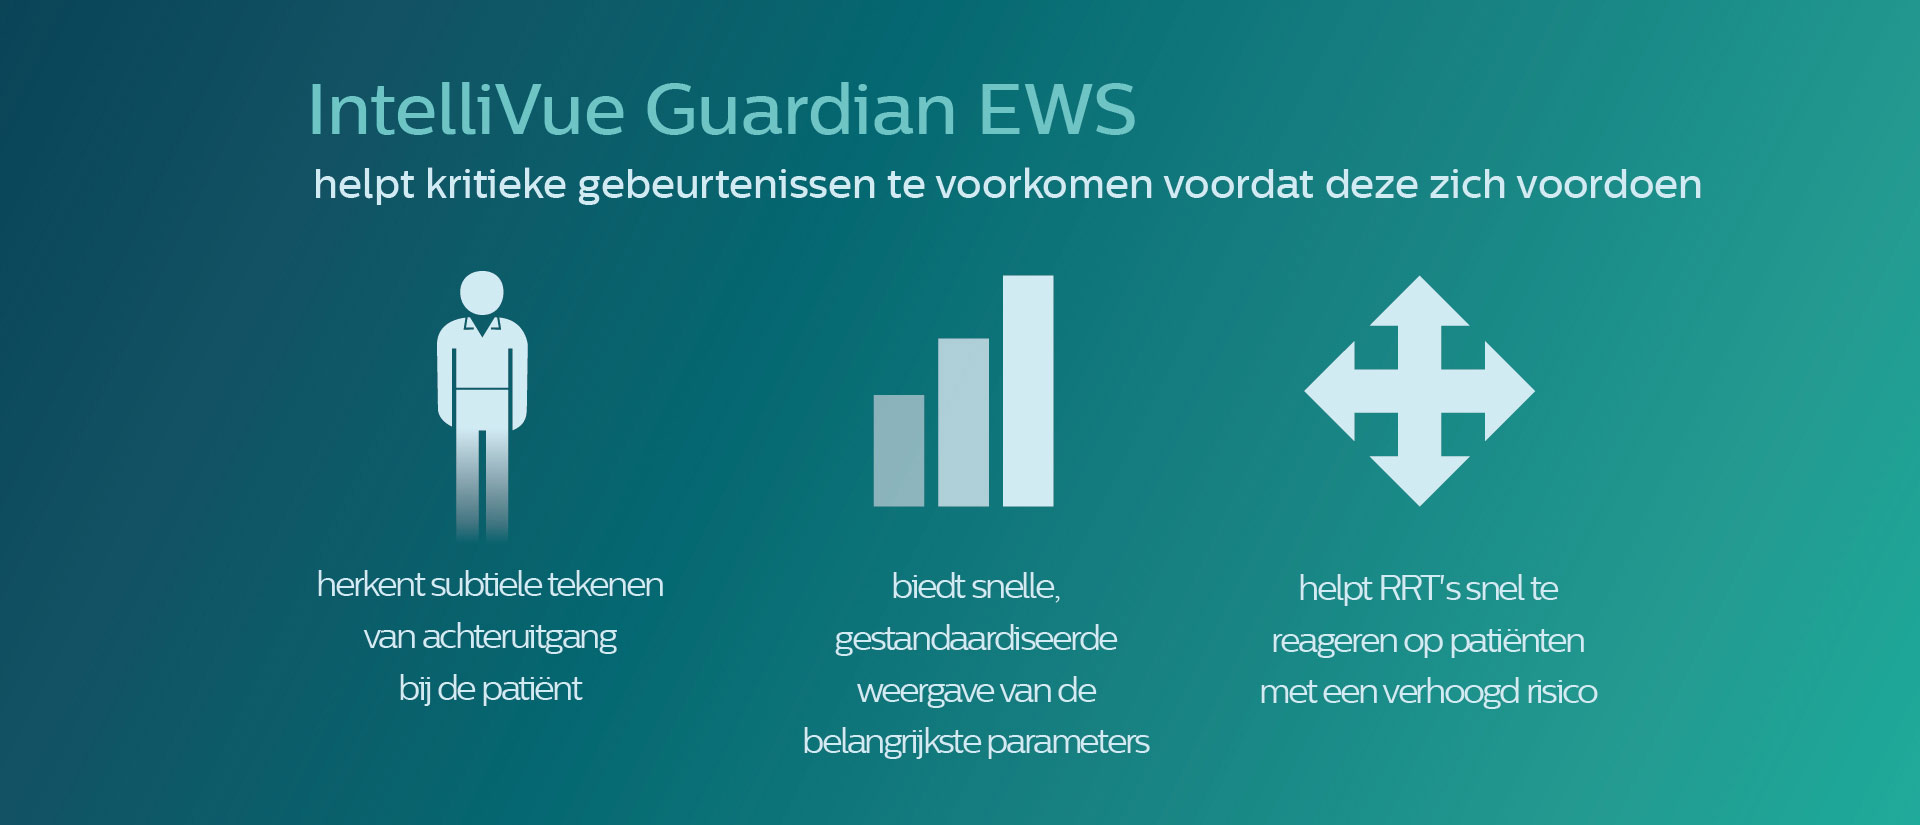 Infographics - Intellivue guardian EWS